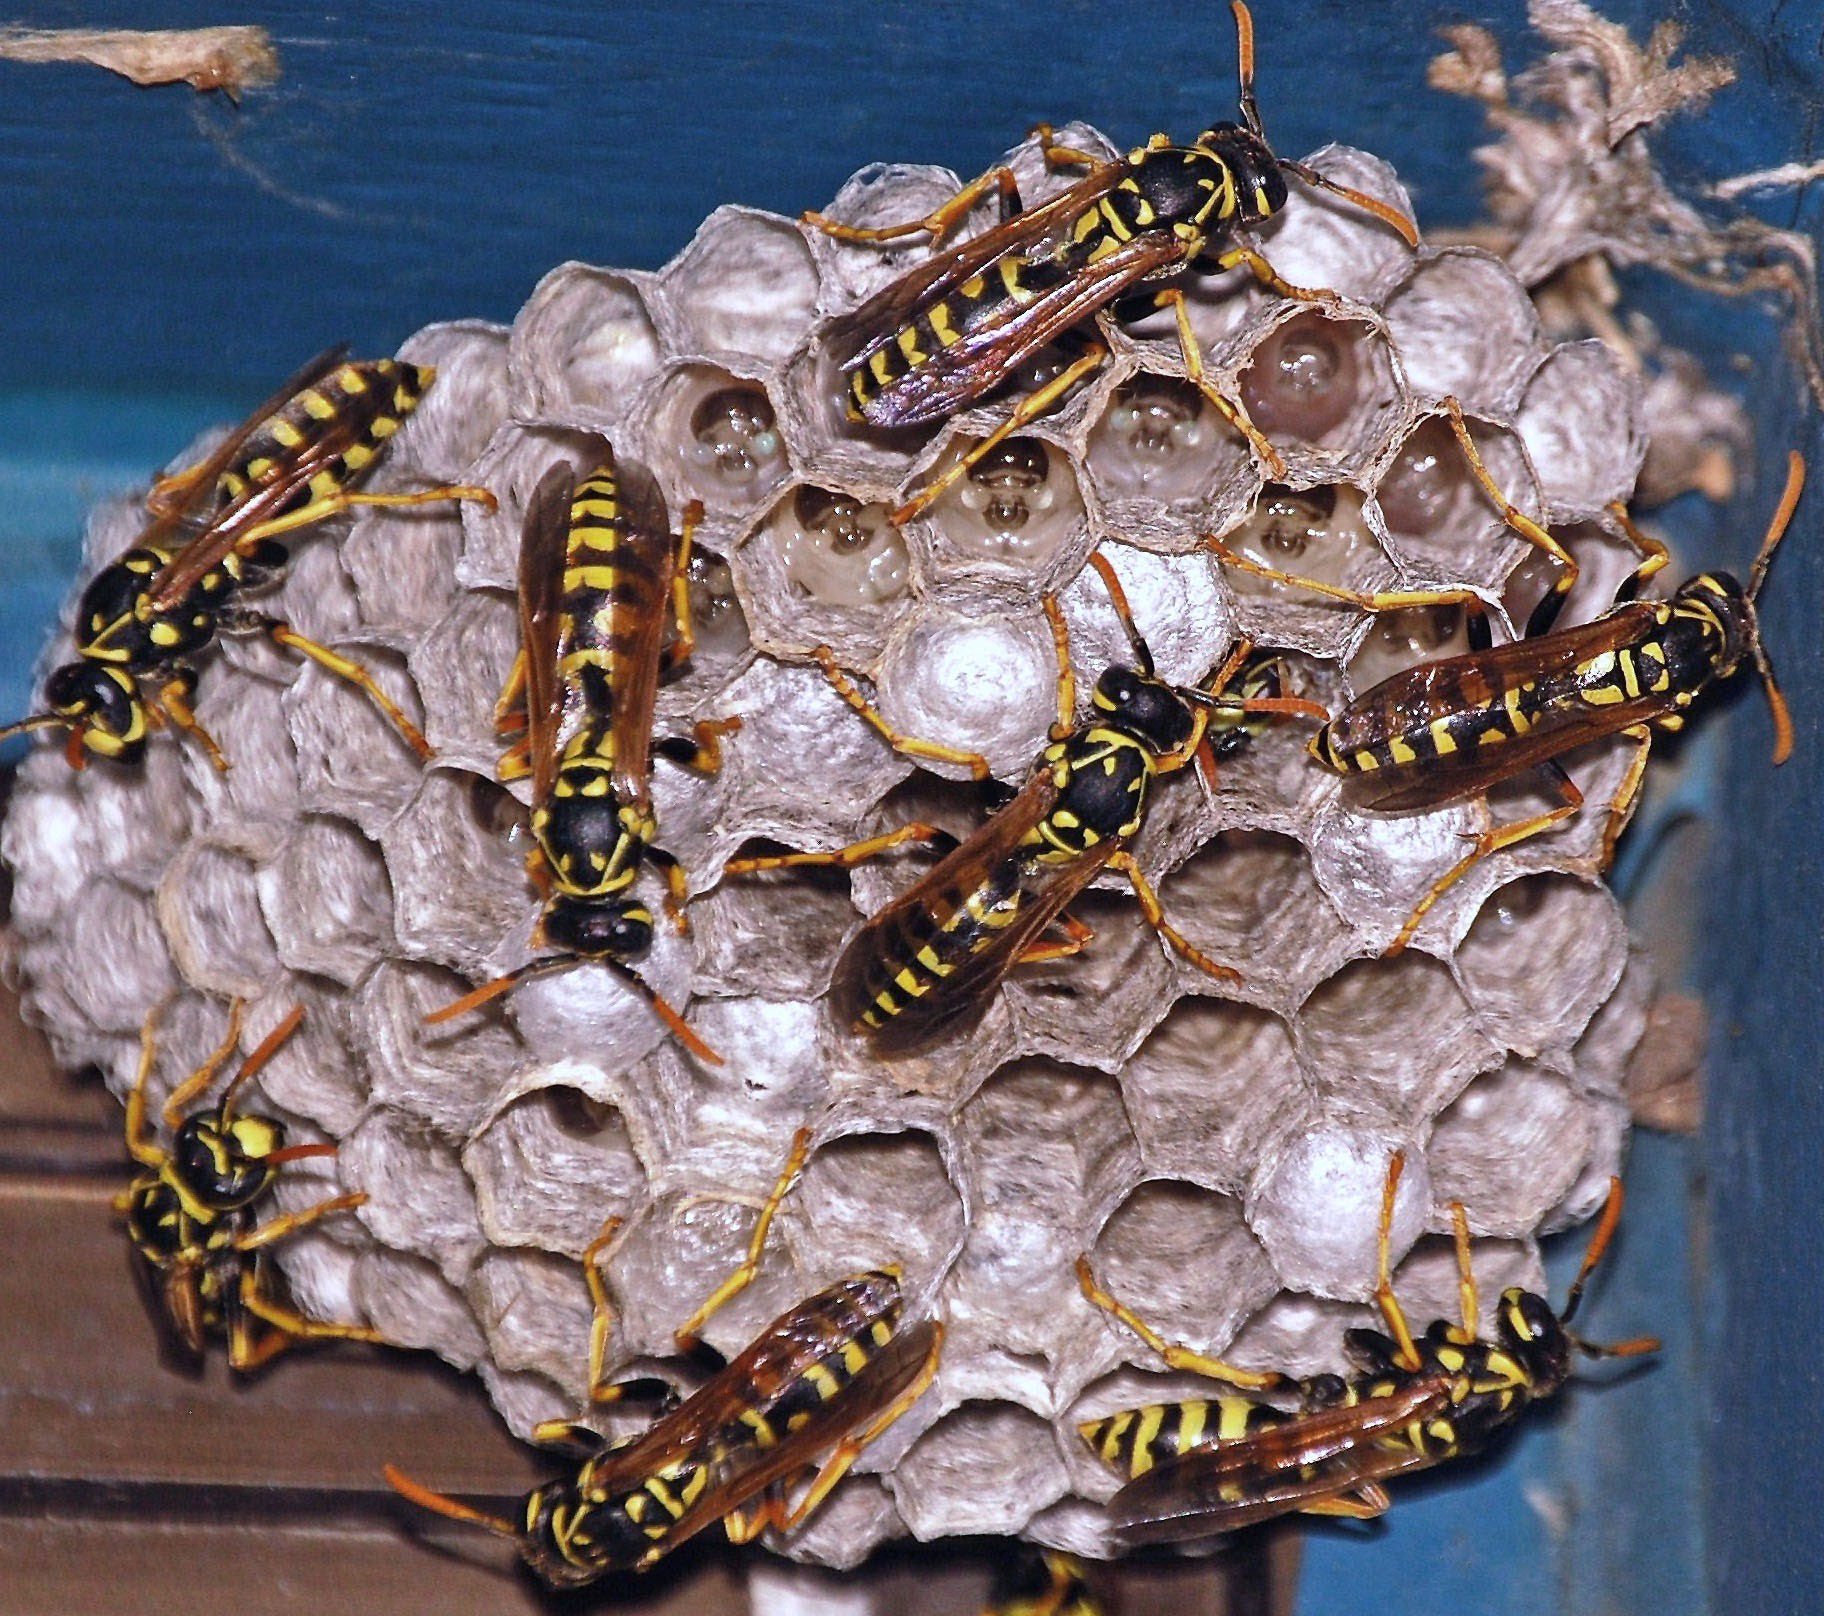 File:Active Wasp Nest.jpg - Wikimedia Commons